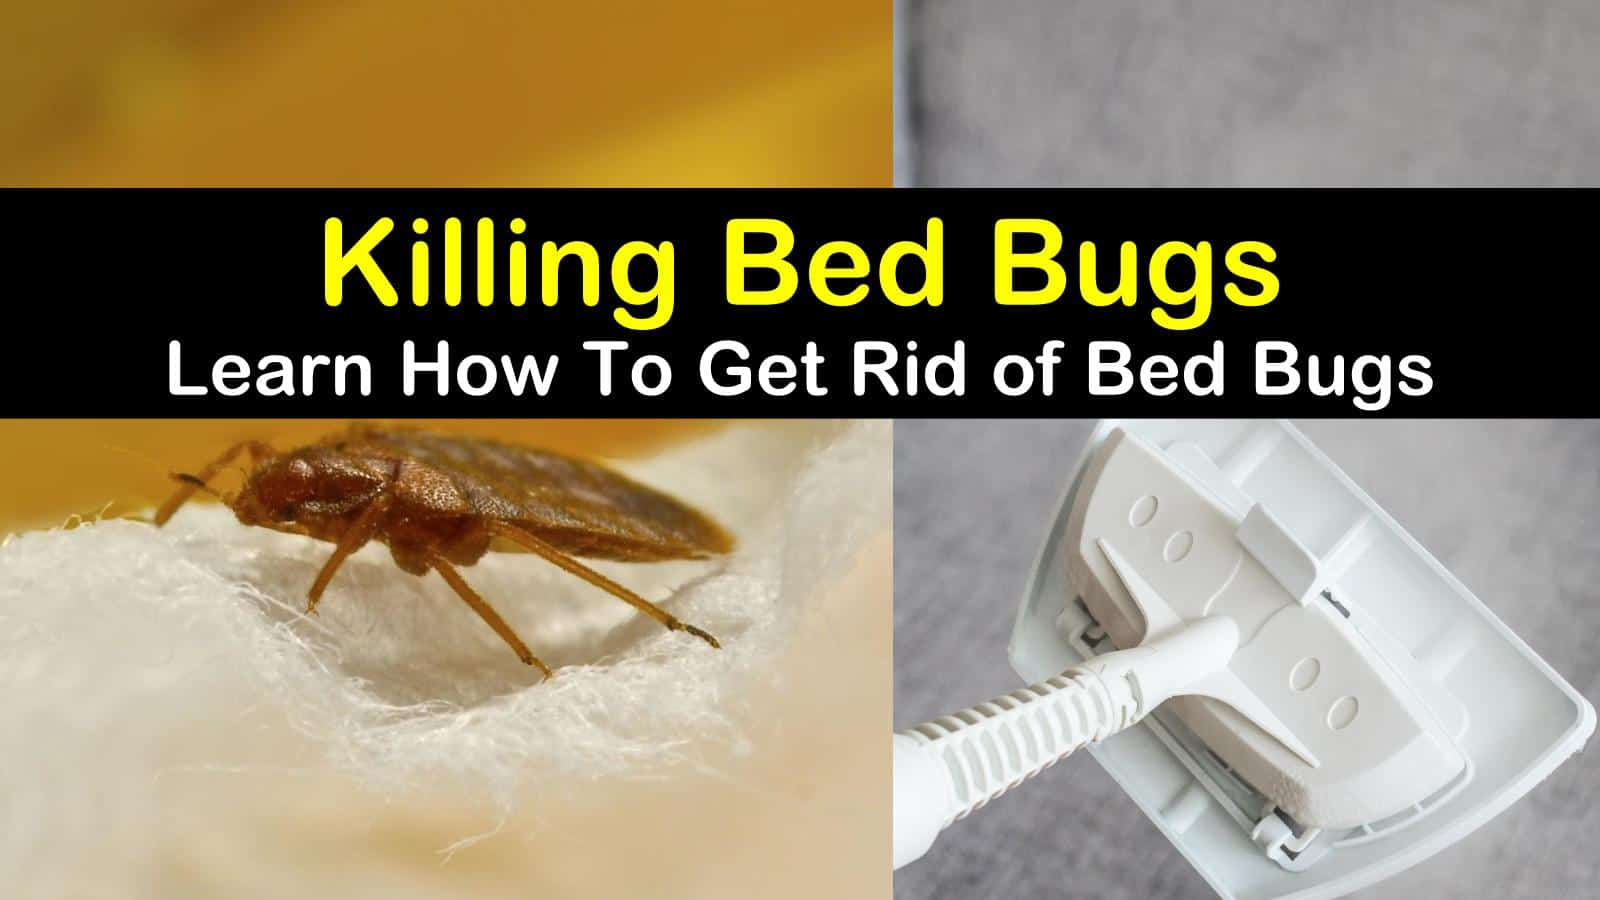 22 Highly Effective Ways To Get Rid Of Bed Bugs